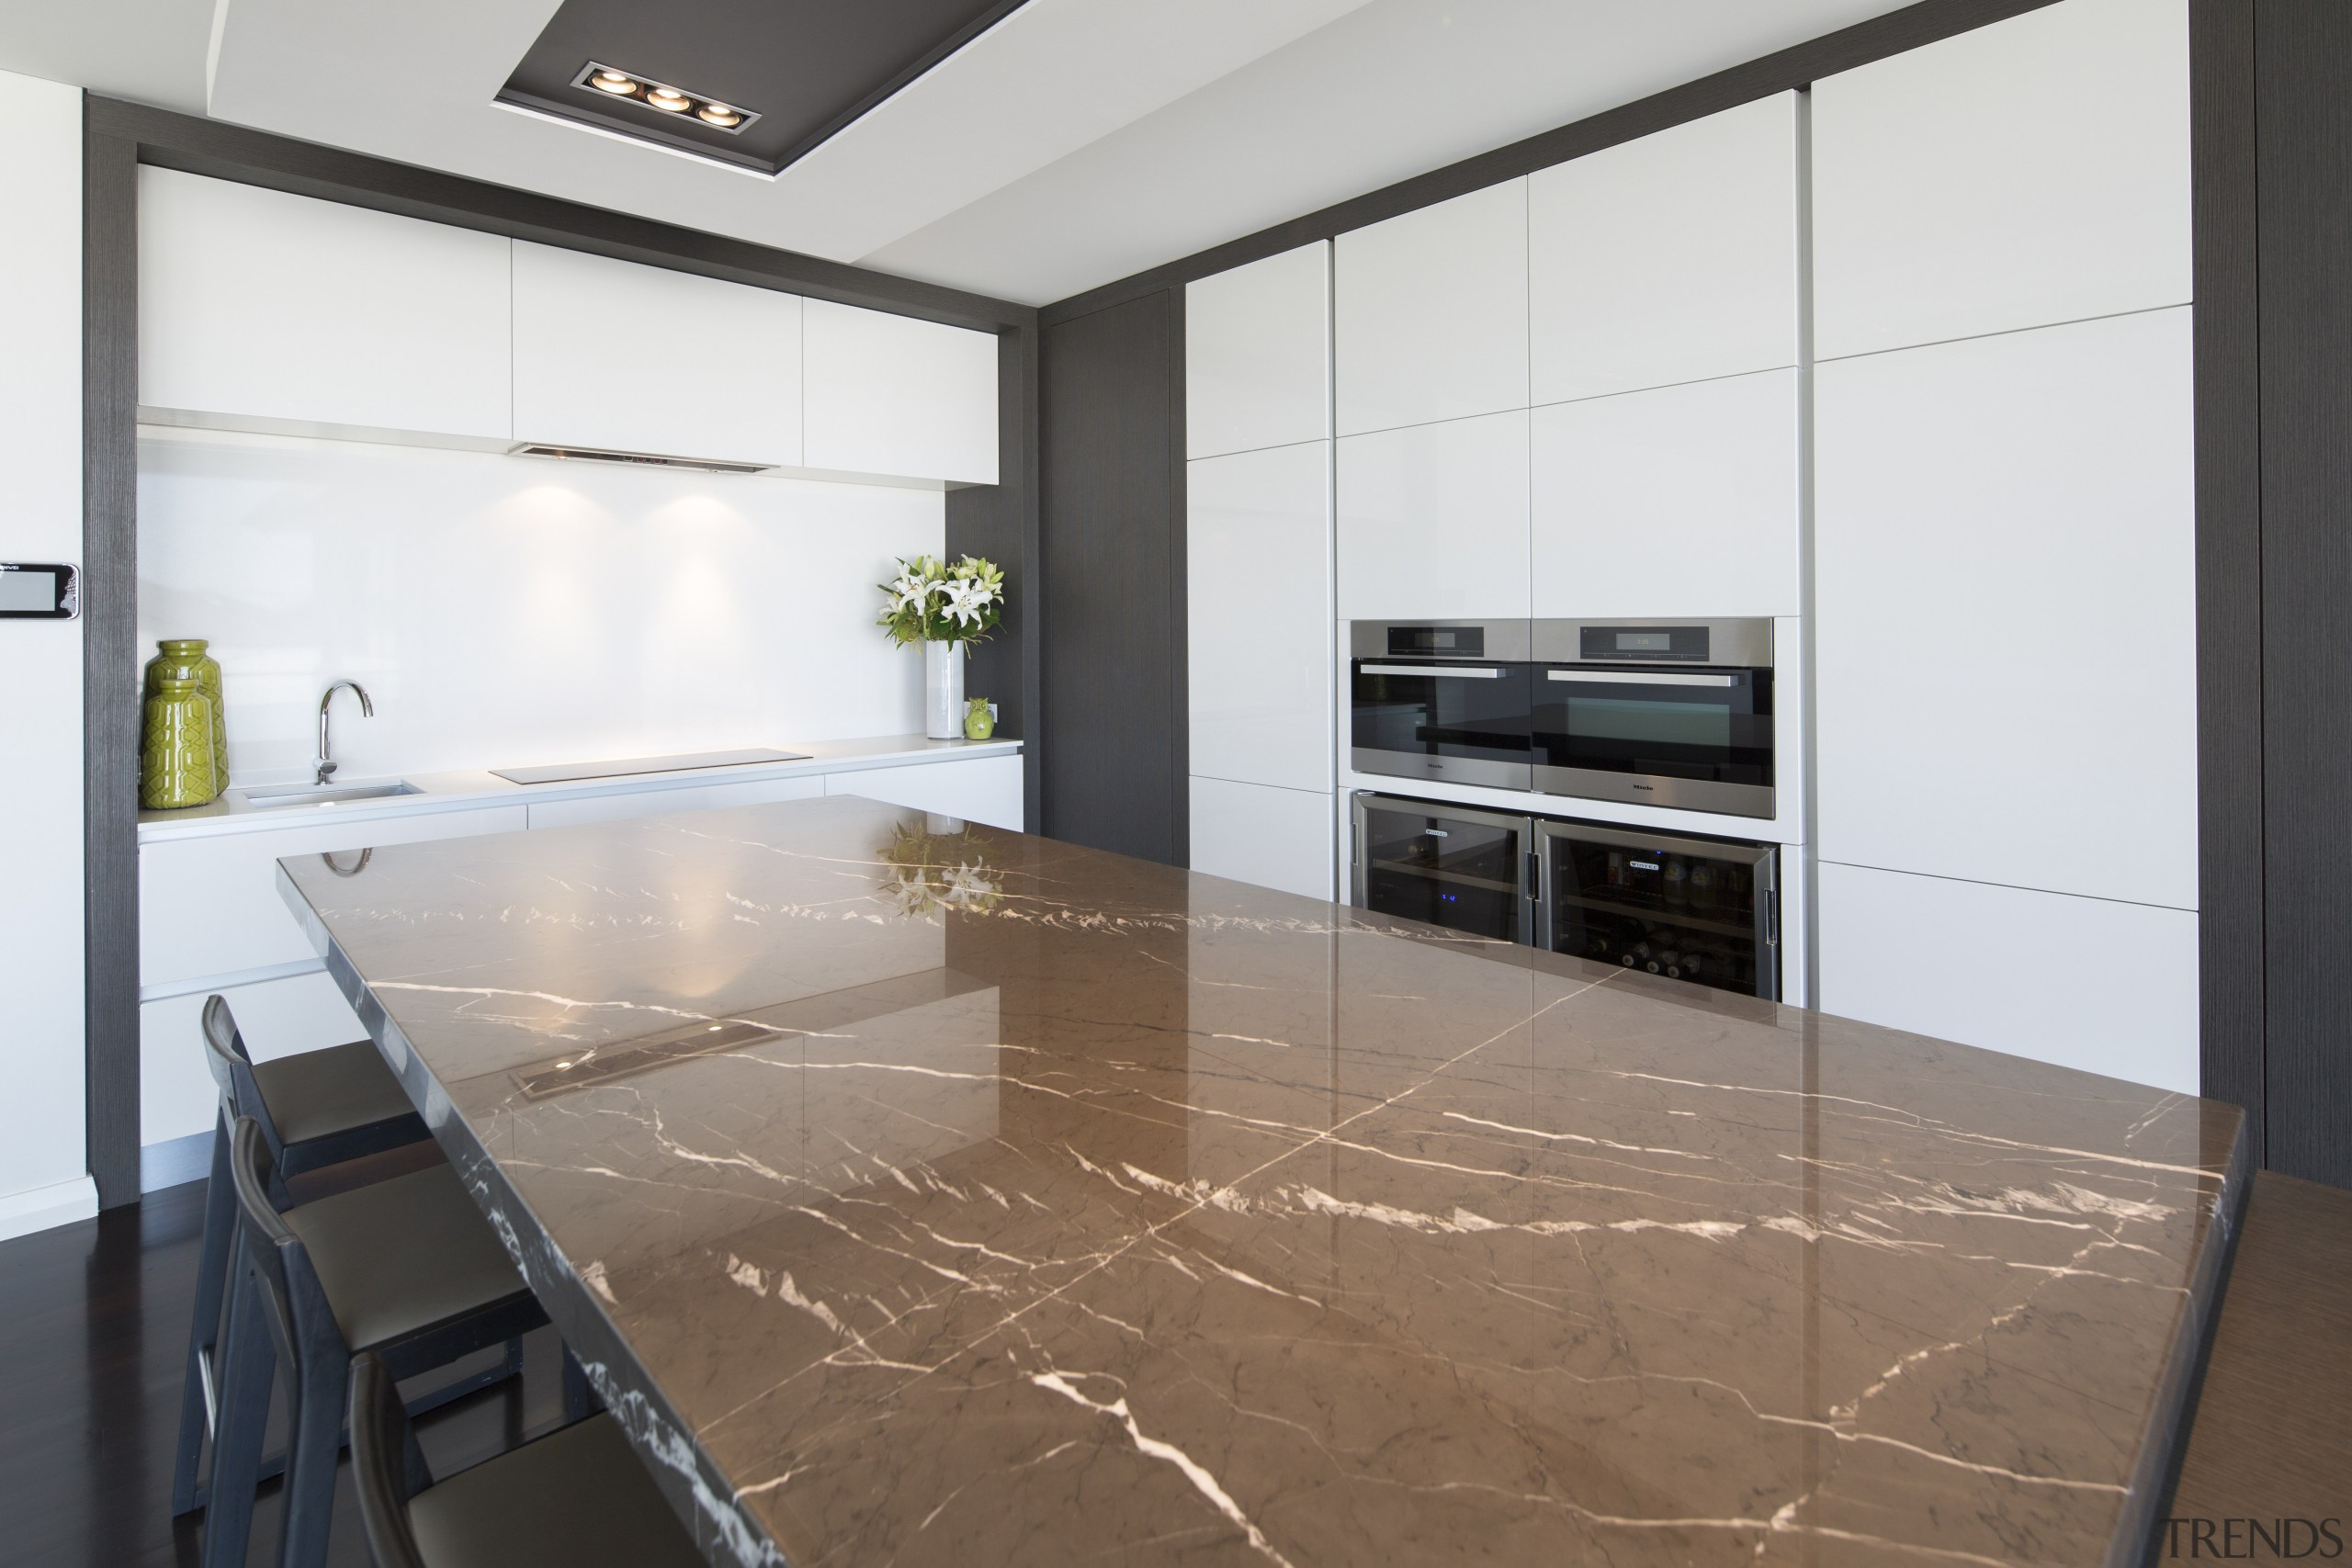 Contemporary kitchen with marble benchtop - Contemporary kitchen countertop, floor, flooring, interior design, kitchen, property, real estate, tile, white